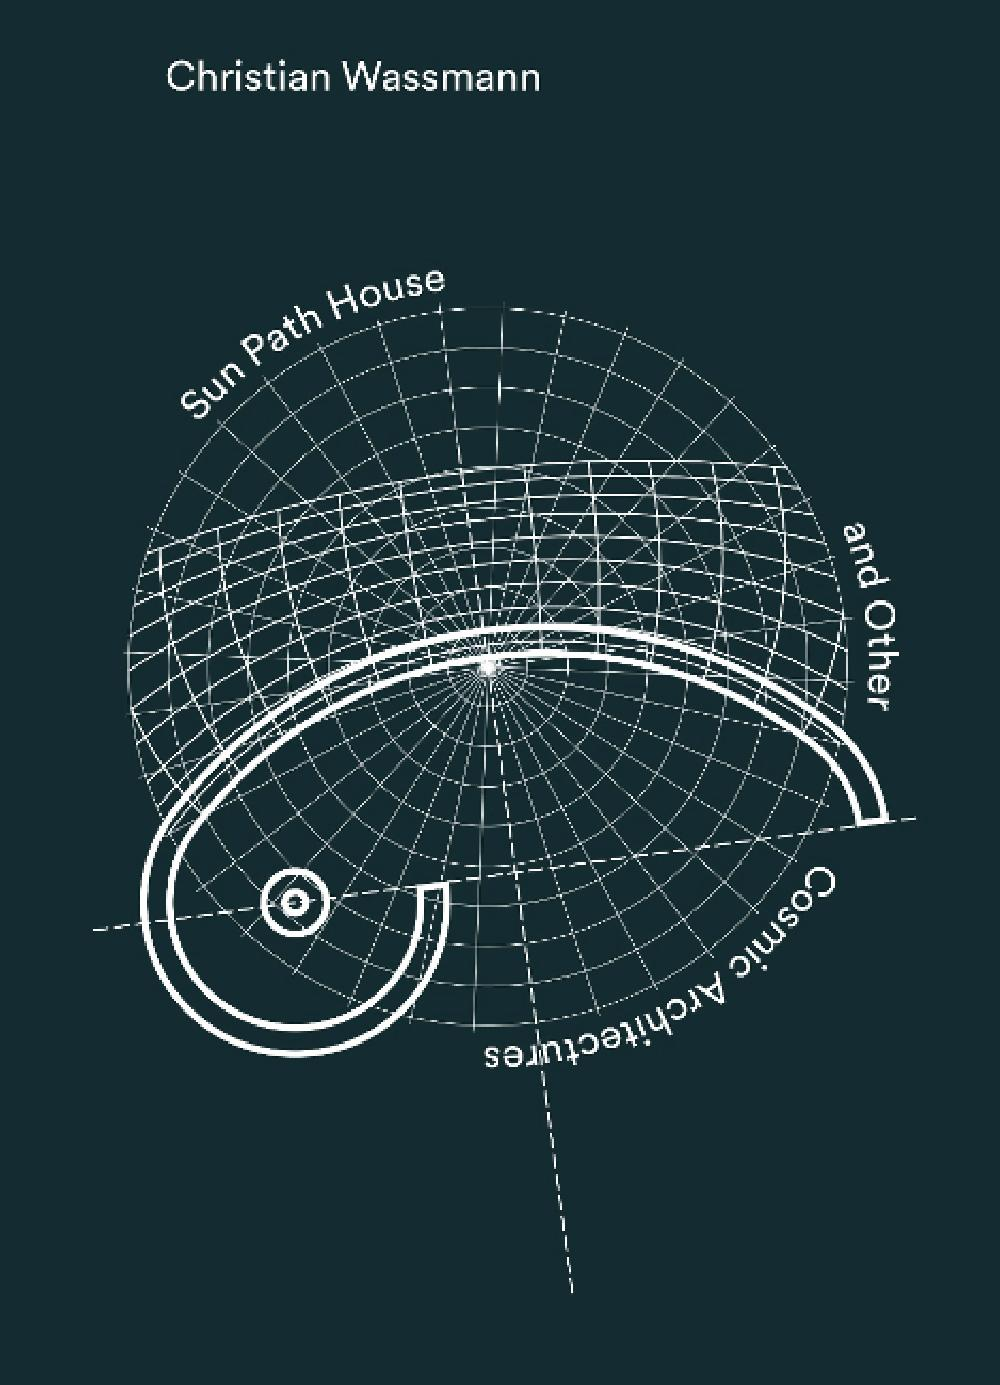 Christian Wassmann: Sun Path House and Other Cosmic Architectures